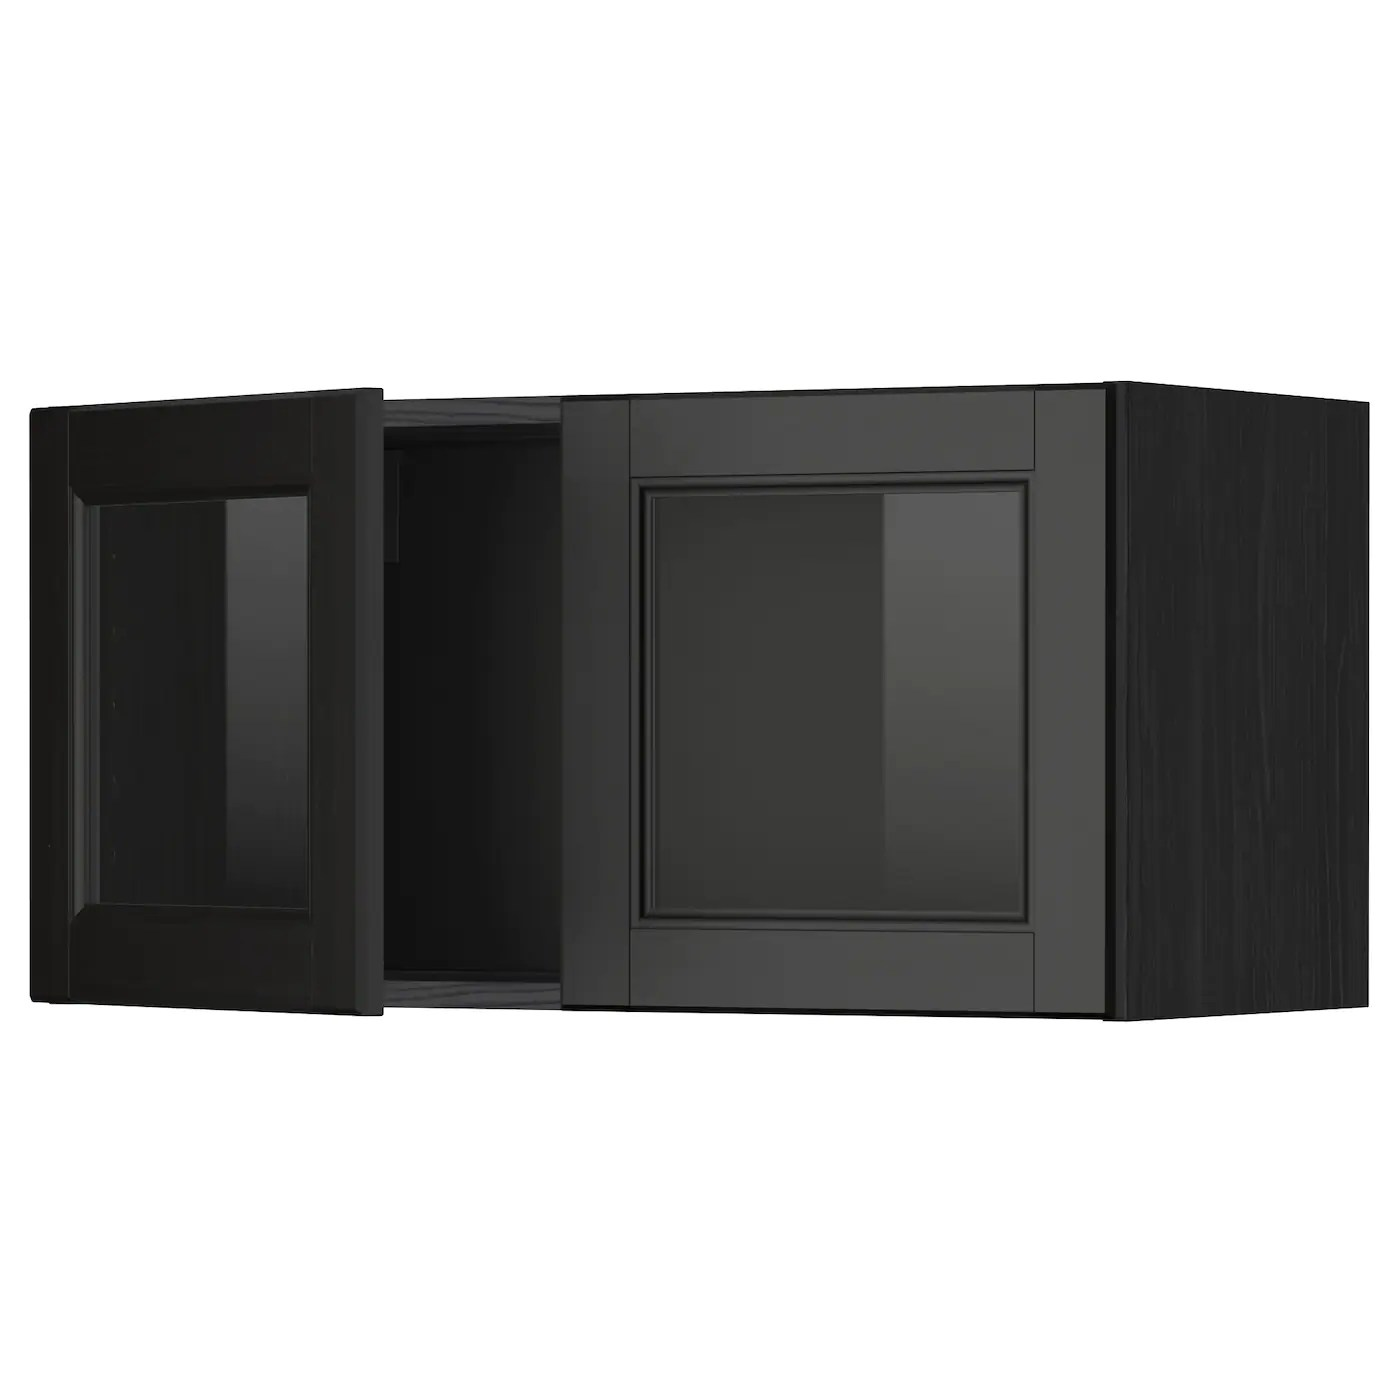 black glass kitchen cabinet doors colorful chairs image to u